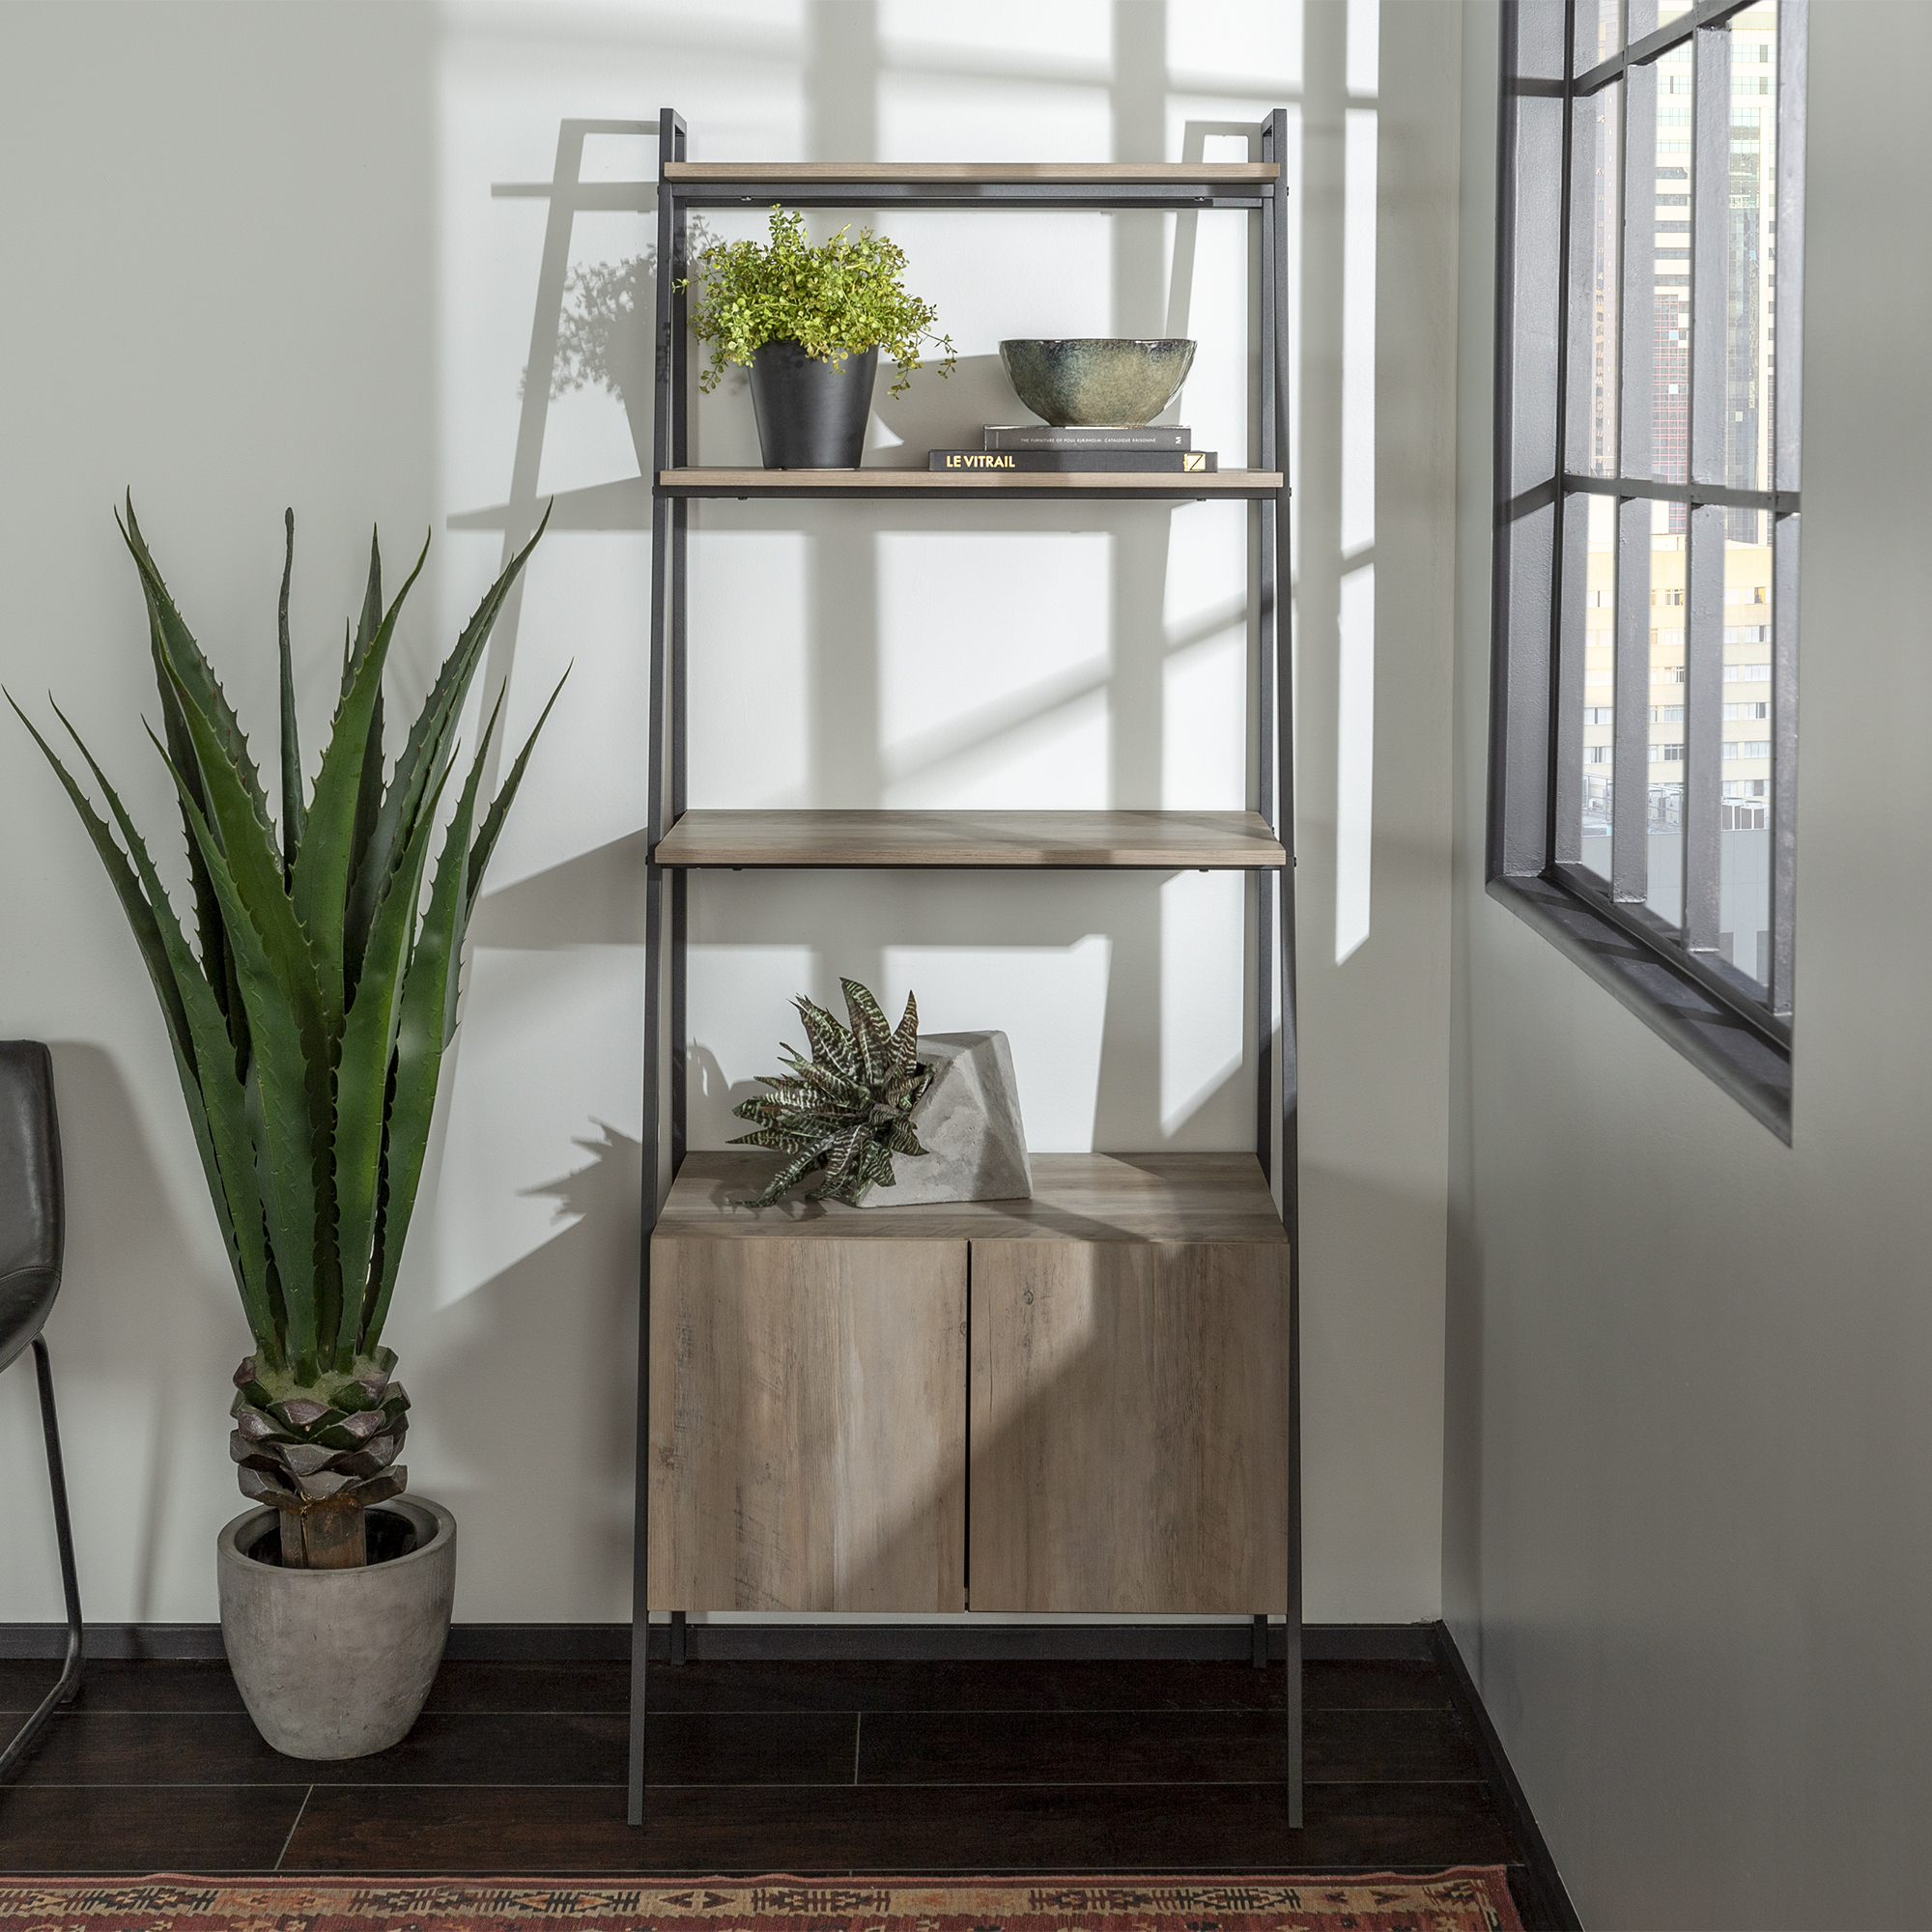 Manor Park Urban Industrial Metal and Wood 4-Shelf Ladder Bookcase with Storage Cabinet - Grey Wash